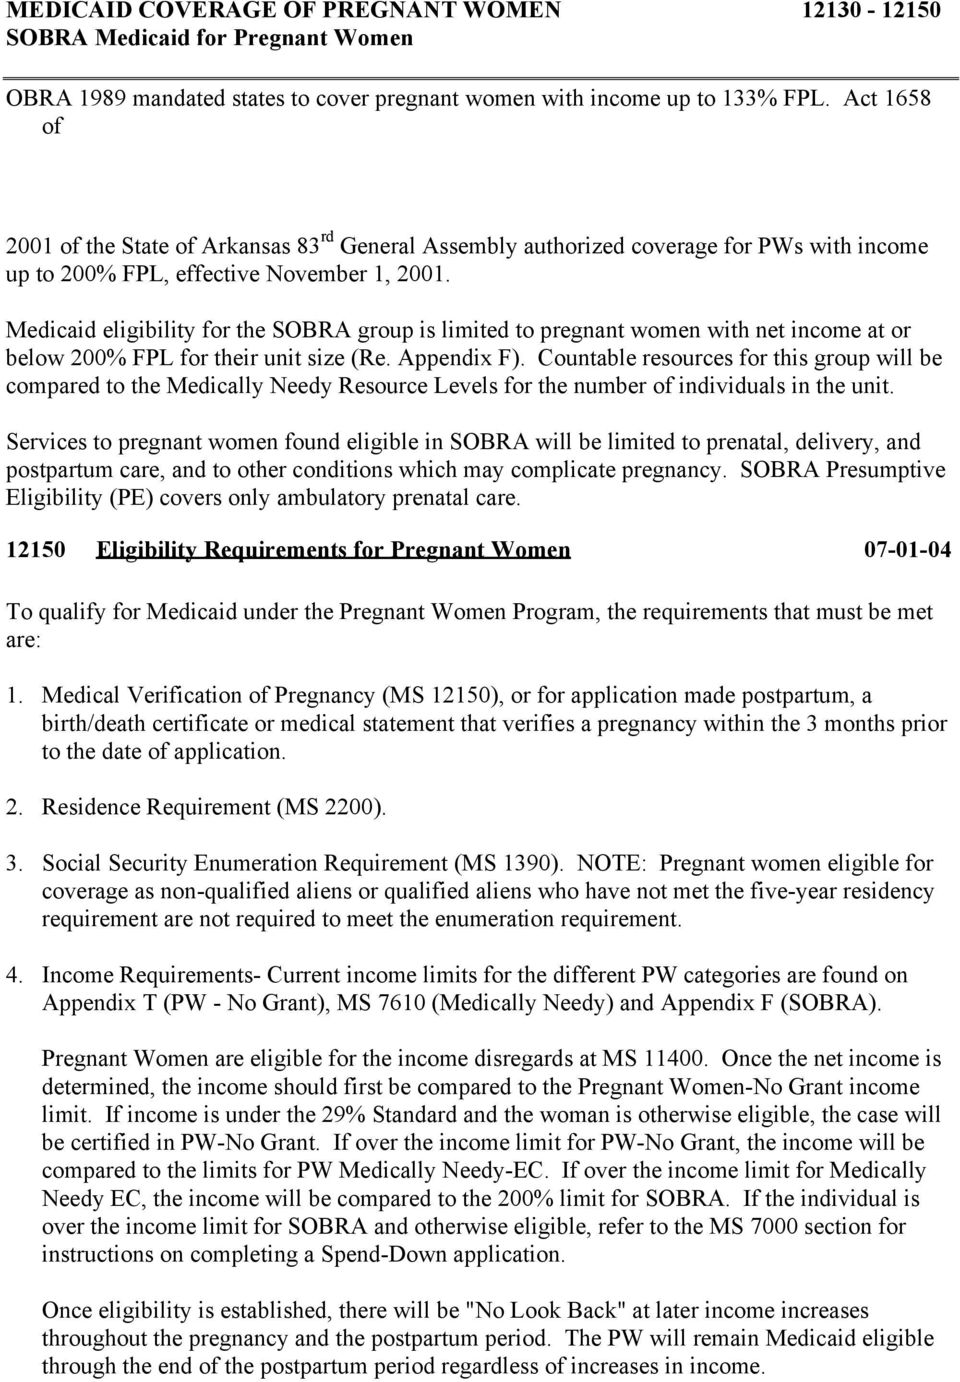 Medicaid eligibility for the SOBRA group is limited to pregnant women with net income at or below 200% FPL for their unit size (Re. Appendix F).